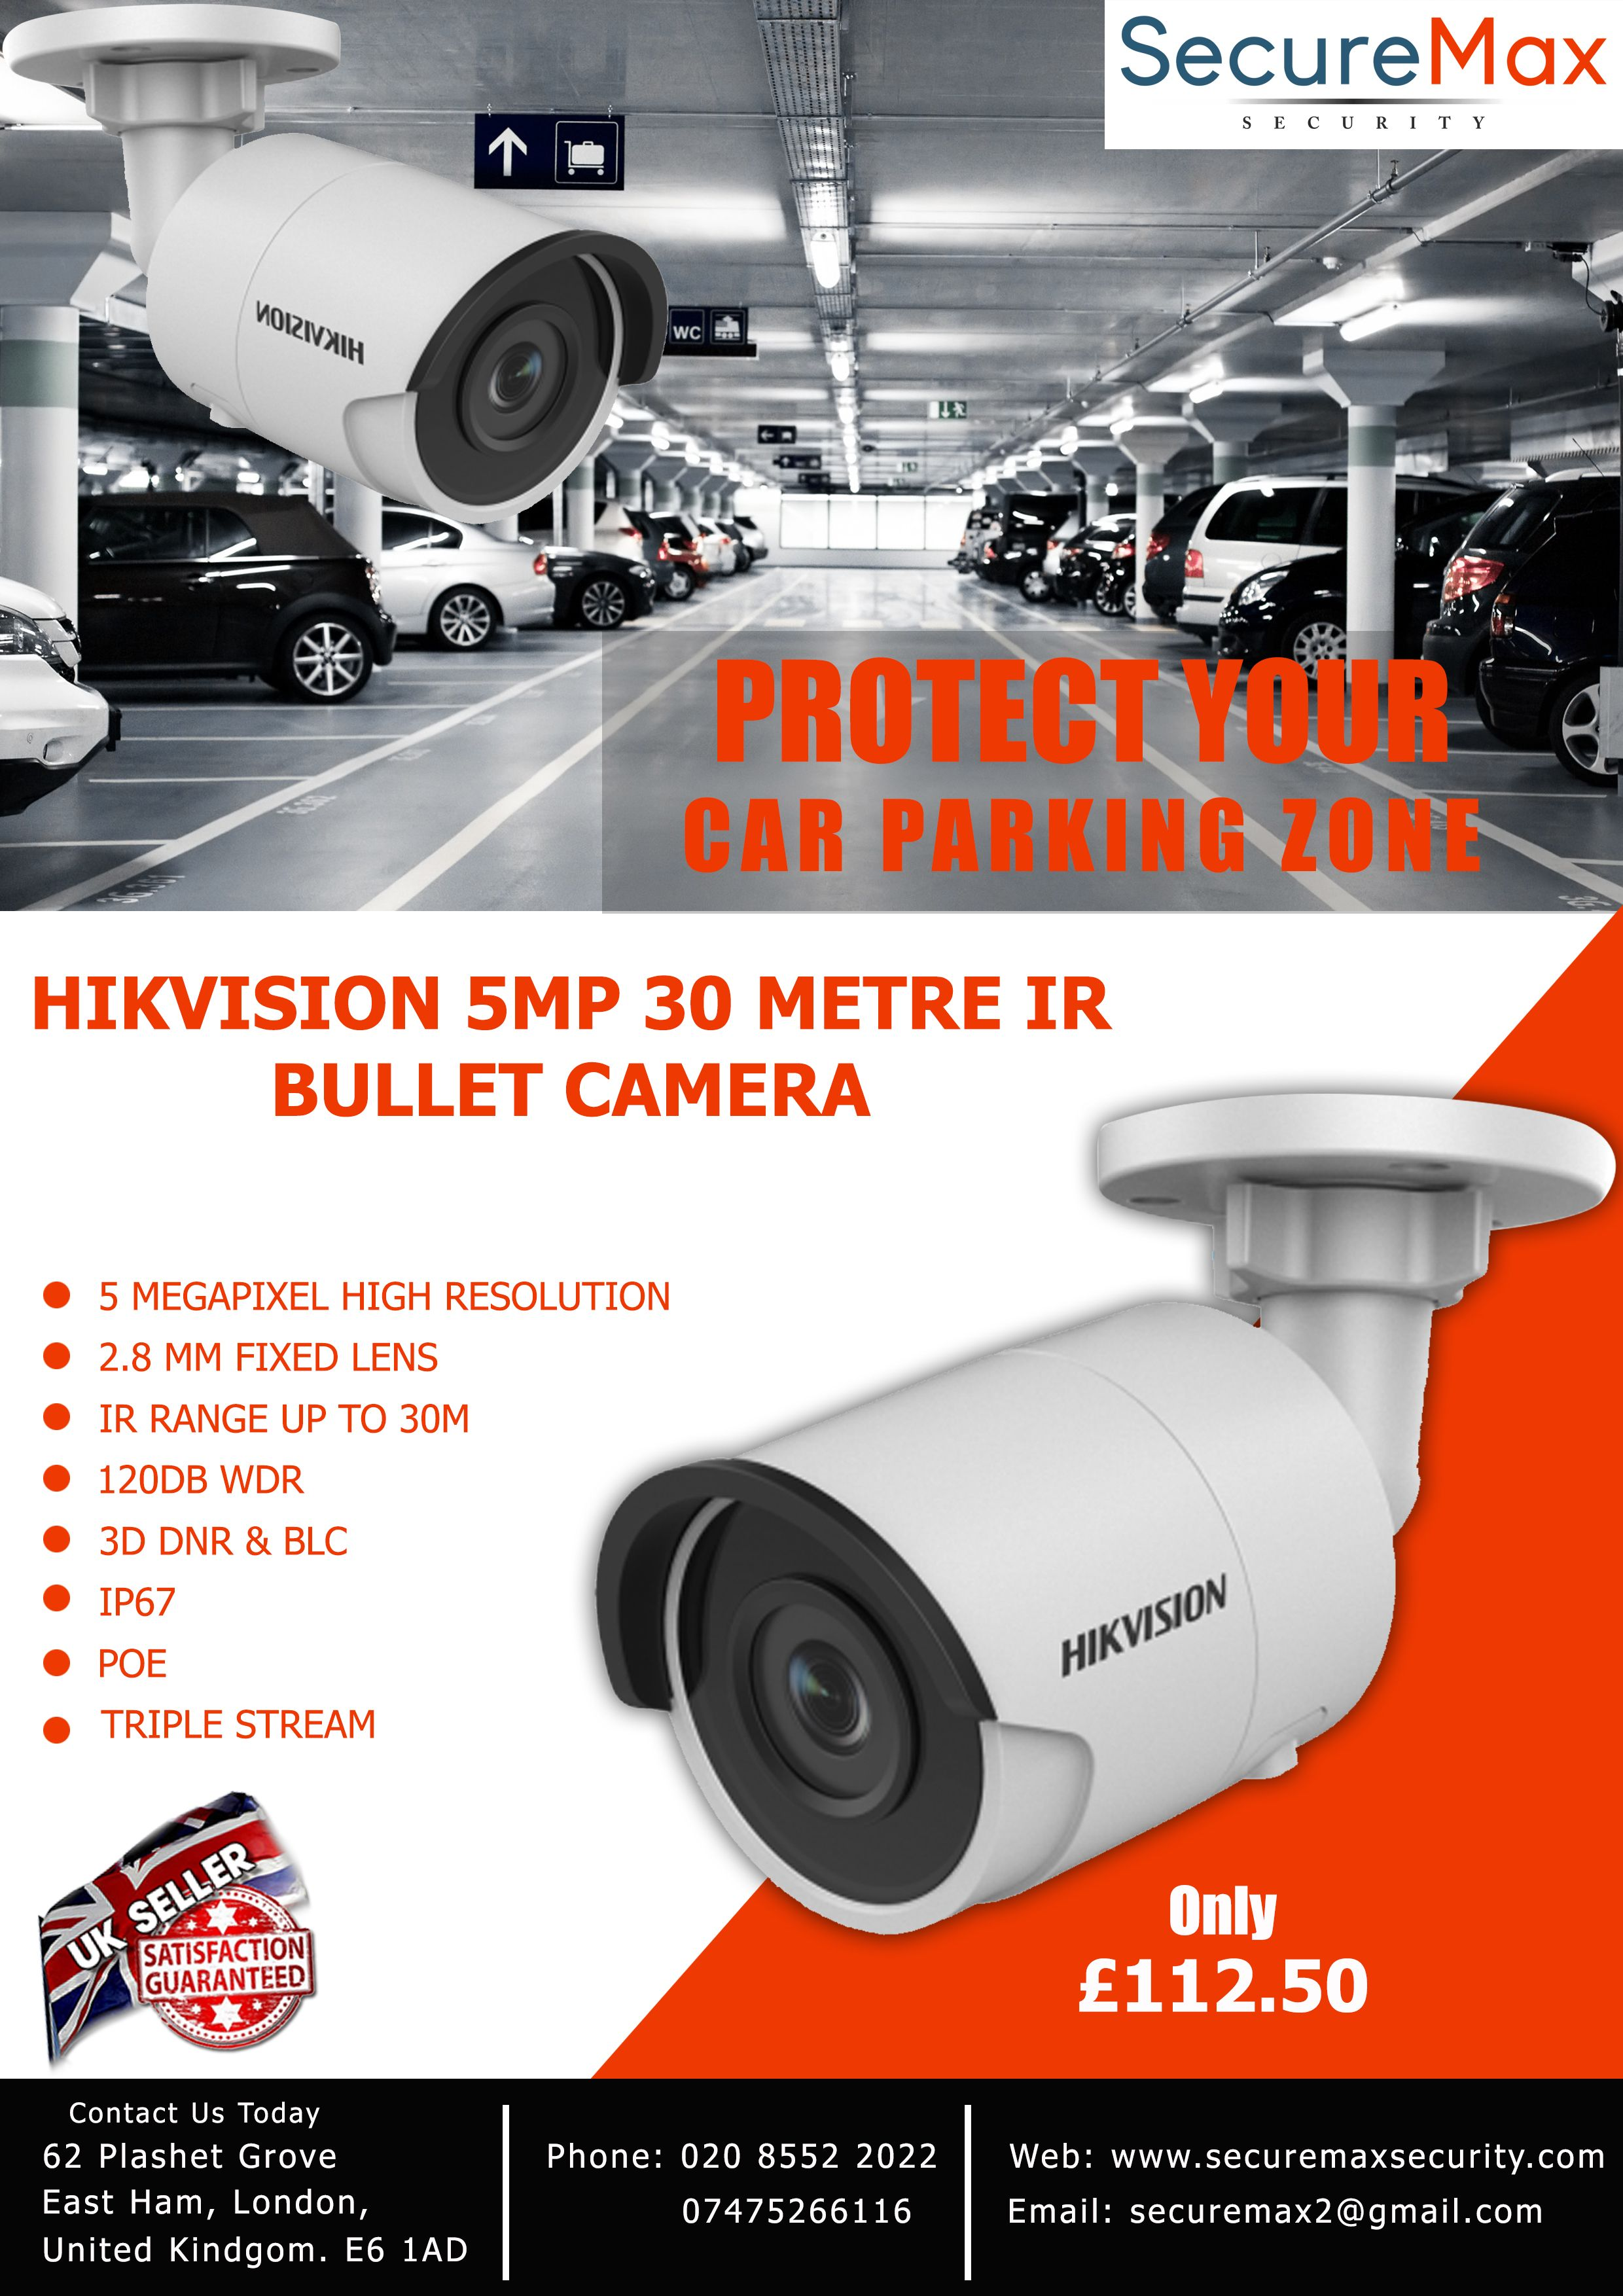 Hikvision 5 Megapixel Cctv Bullet Camera Seller In Uk Security Cameras For Home Wireless Home Security Systems Bullet Camera